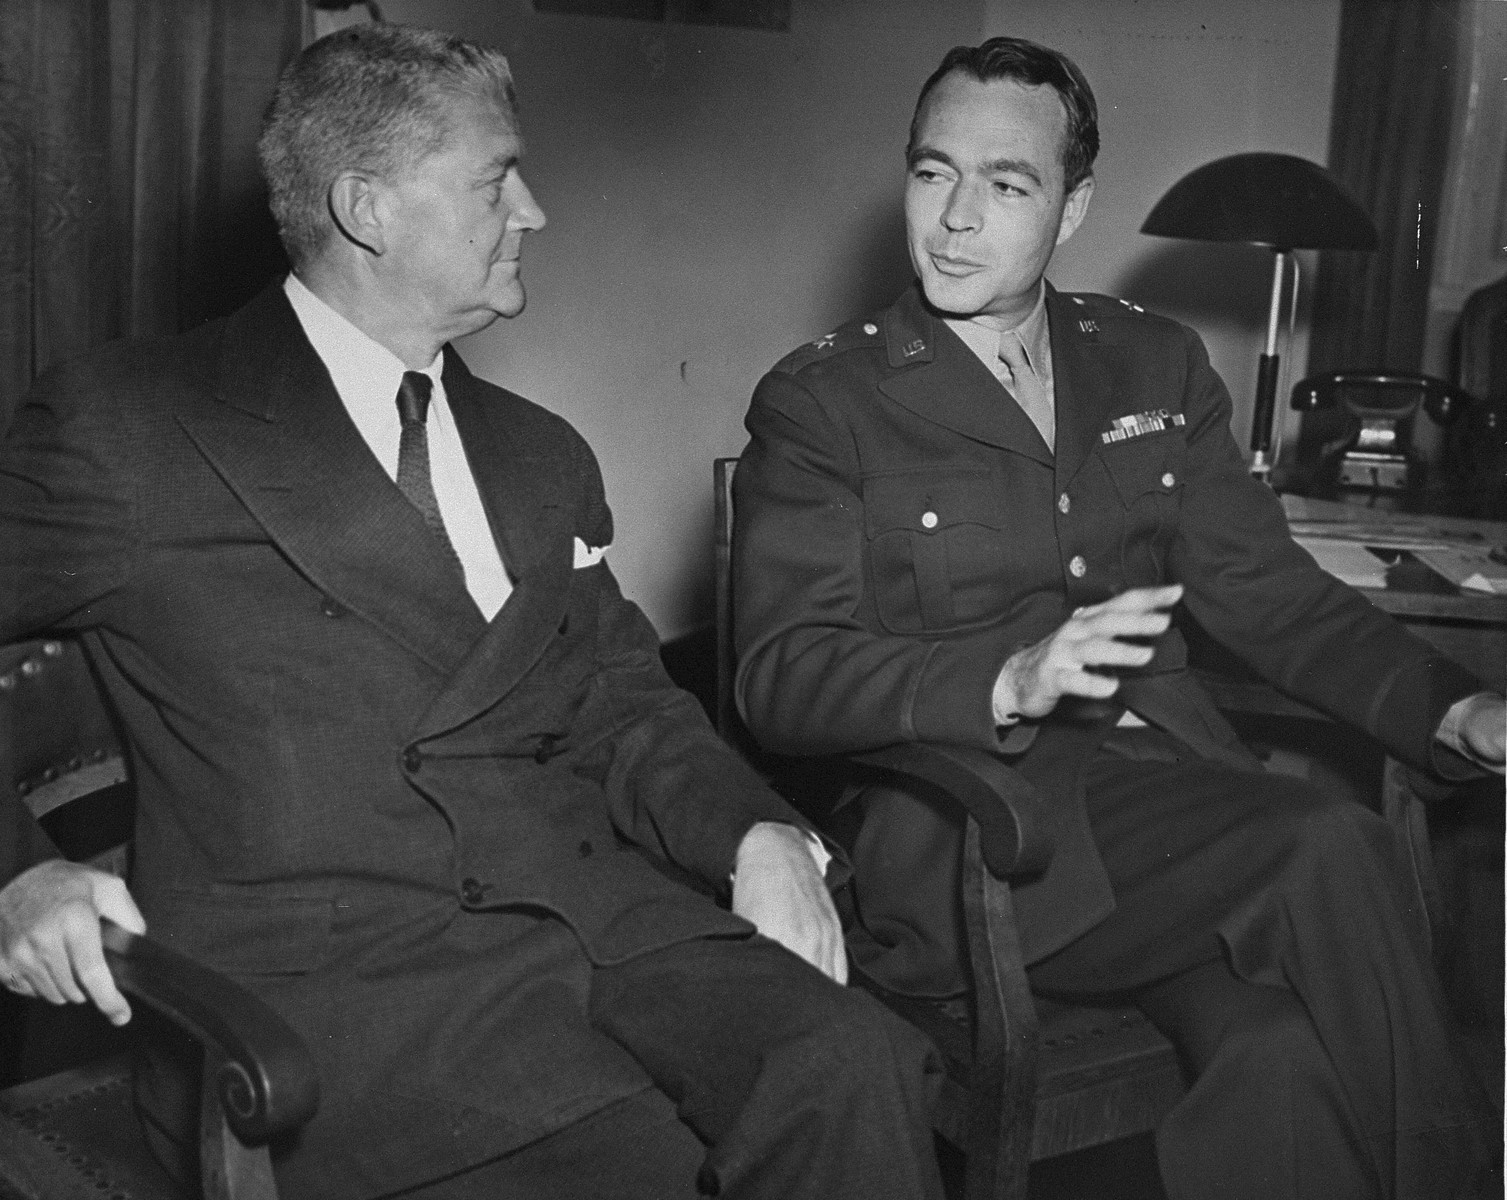 Associate U.S. trial counsel Brigadier General Telford Taylor (right) with an unidentified man at the International Military Tribunal trial of war criminals at Nuremberg.